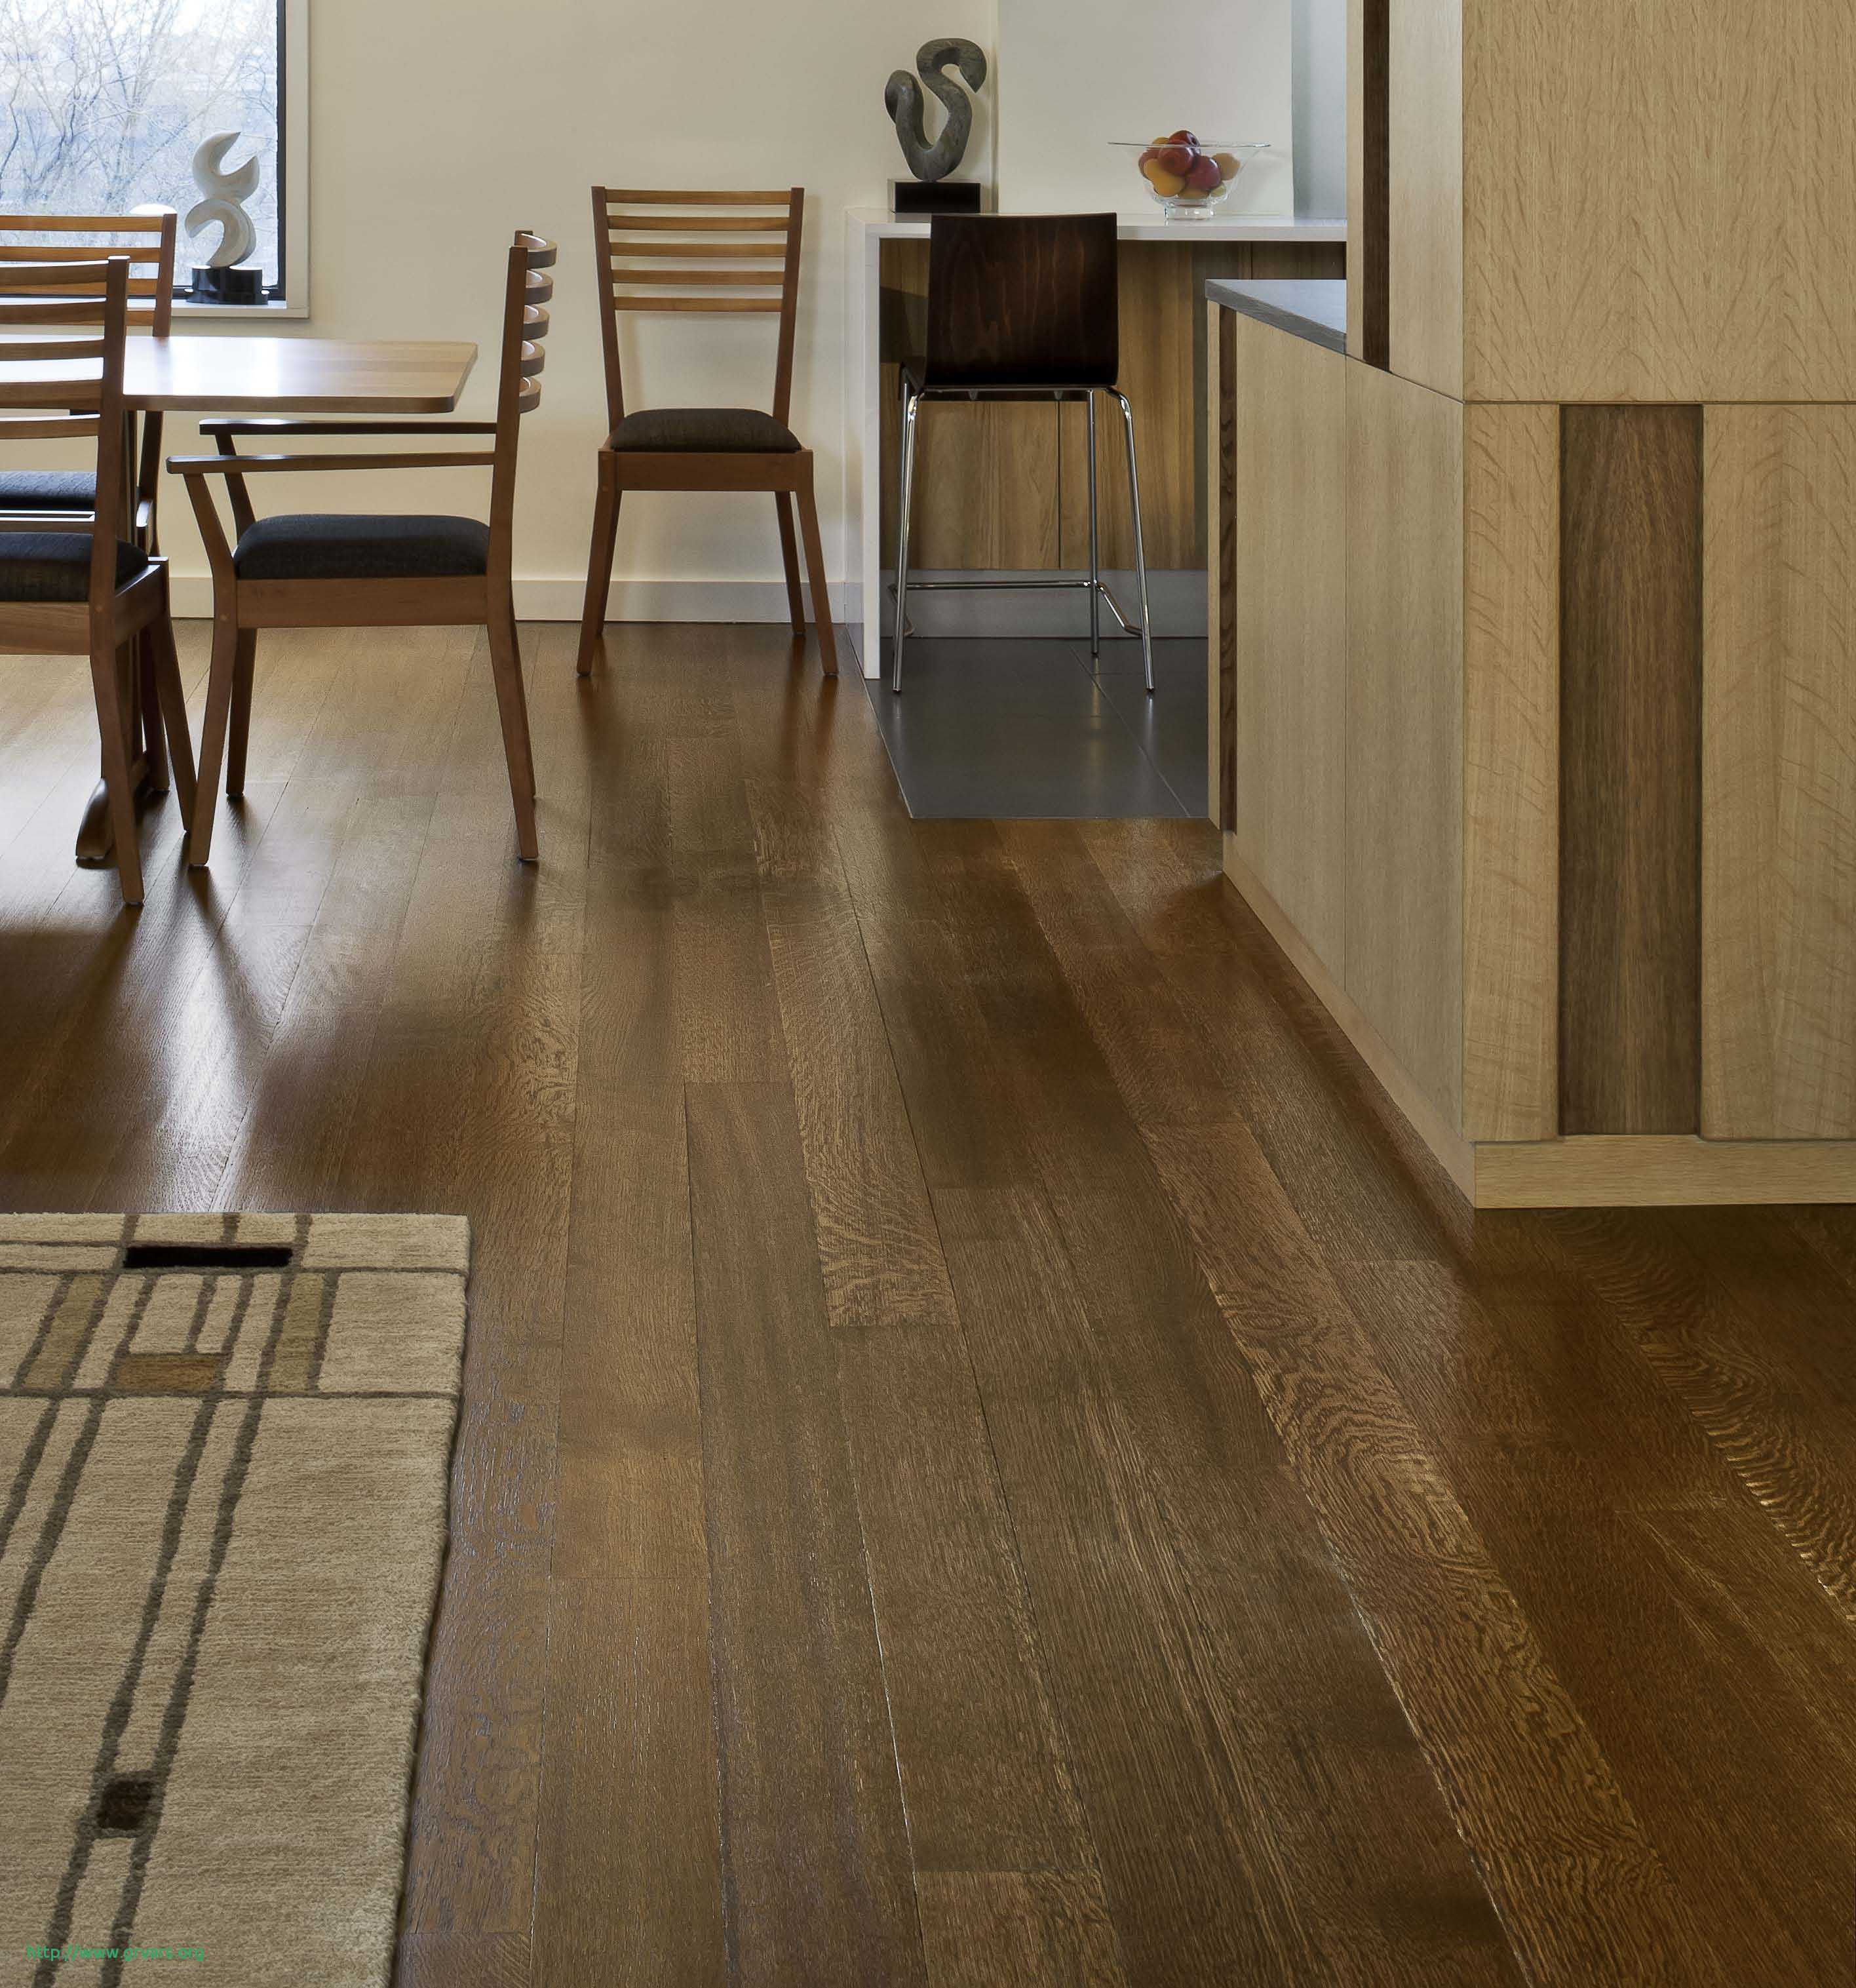 pictures of refinished hardwood floors of buy floors direct nashville a‰lagant engaging discount hardwood in buy floors direct nashville a‰lagant engaging discount hardwood flooring 5 where to buy inspirational 0d